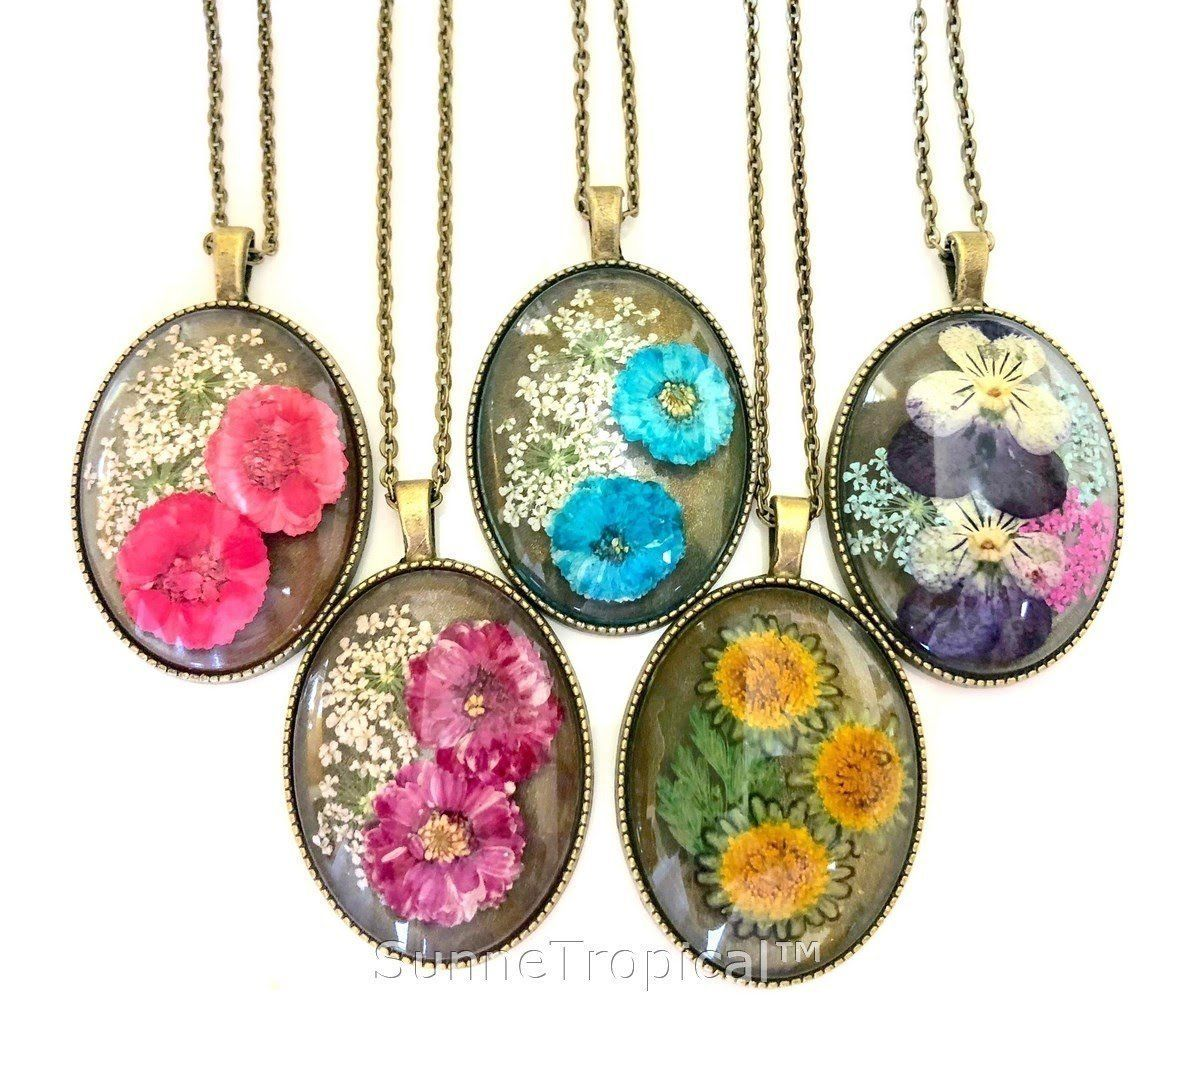 Daisy real pressed flower jewelry vintage oval pendant necklace